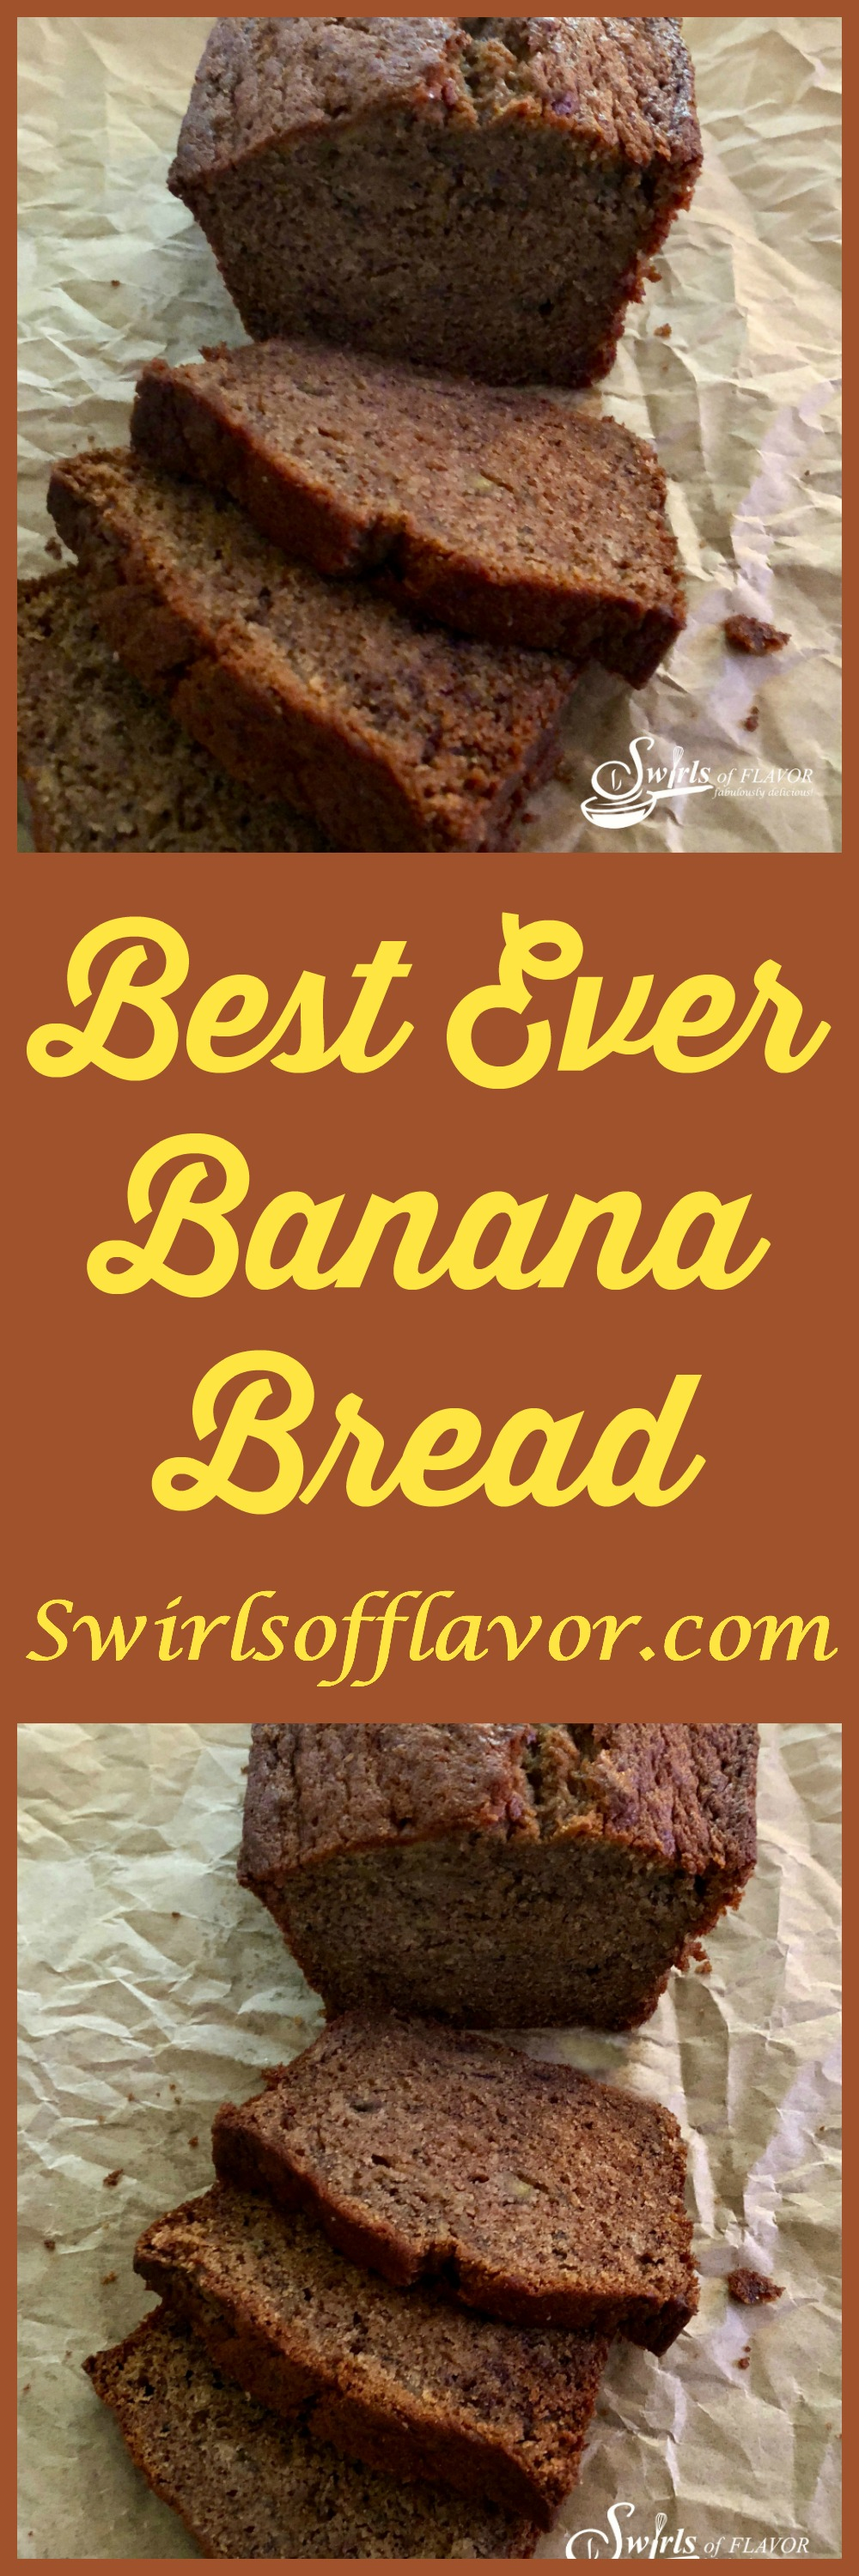 Best Ever Banana Bread is made in one bowl with basic ingredients you most likely have on hand in your kitchen! bananas | banana bread | easy | one bowl | best ever | ripe bananas | quick bread | #swirlsofflavor